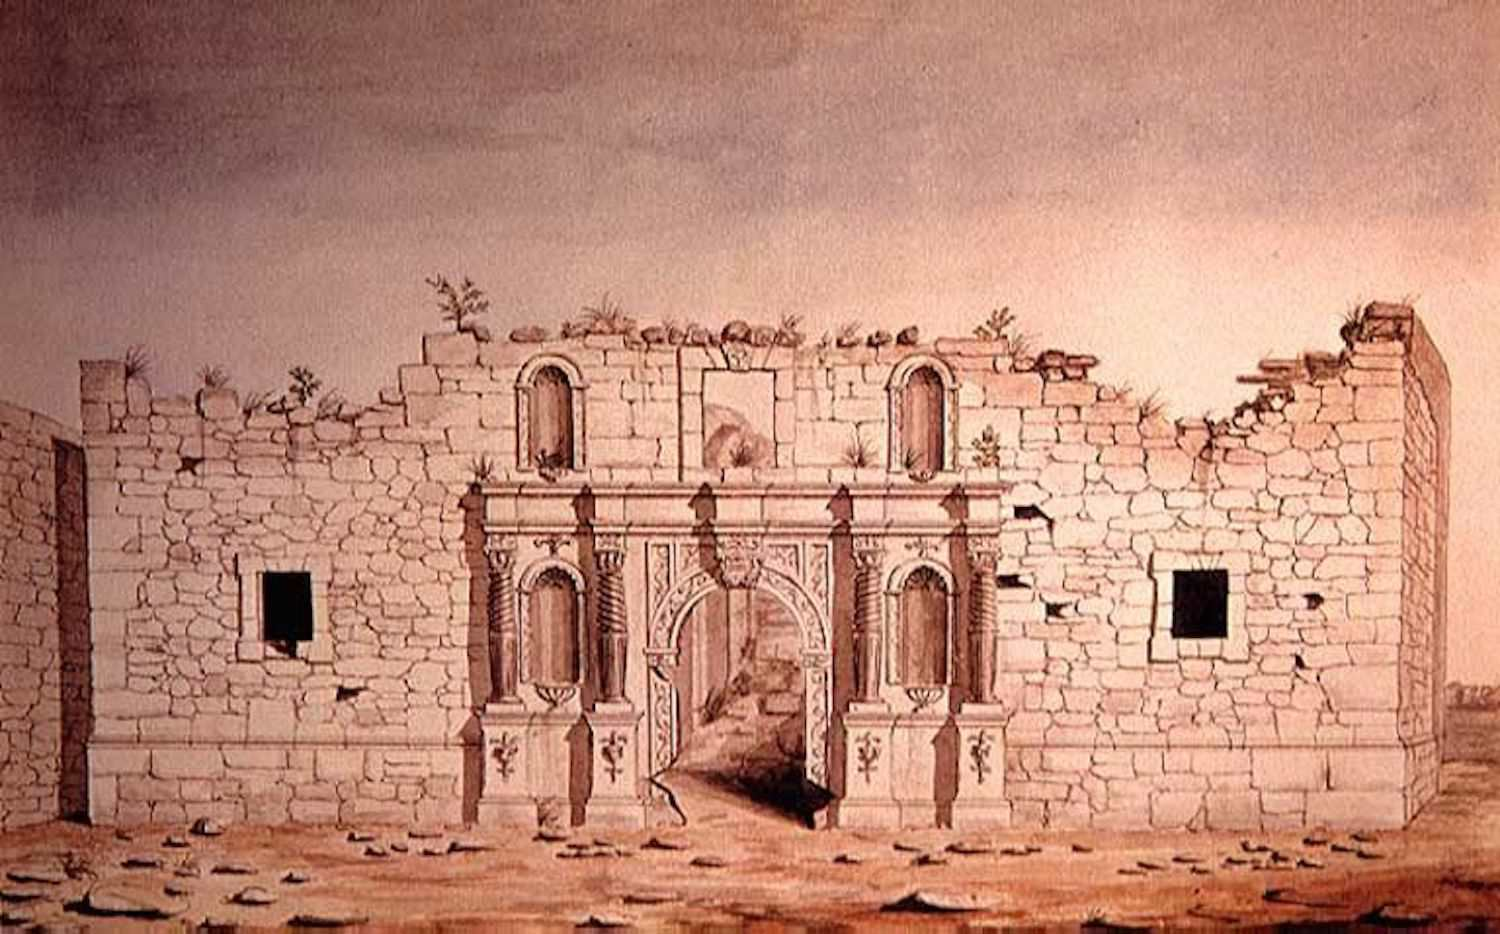 The Alamo Mission, painted 10 years after the battle